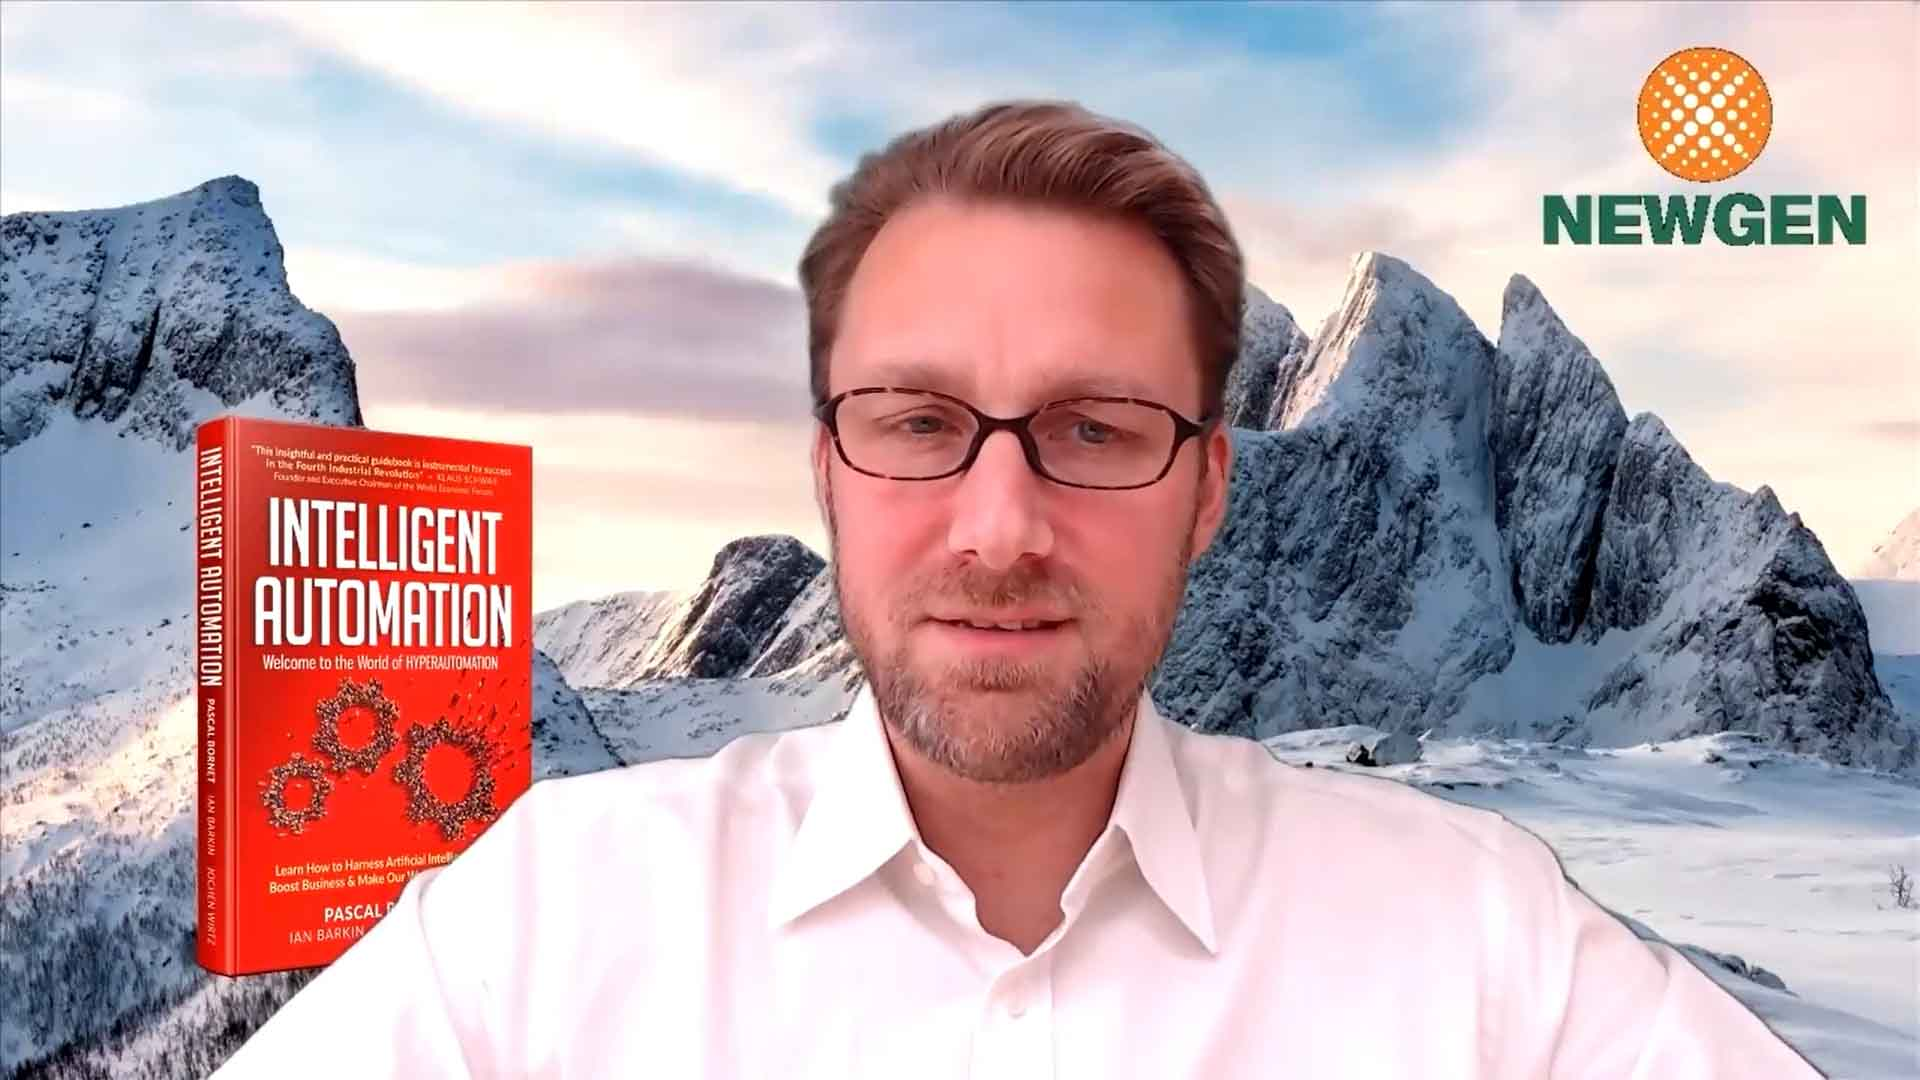 Intelligent Automation by Pascal Bornet - Low Code Process Automation